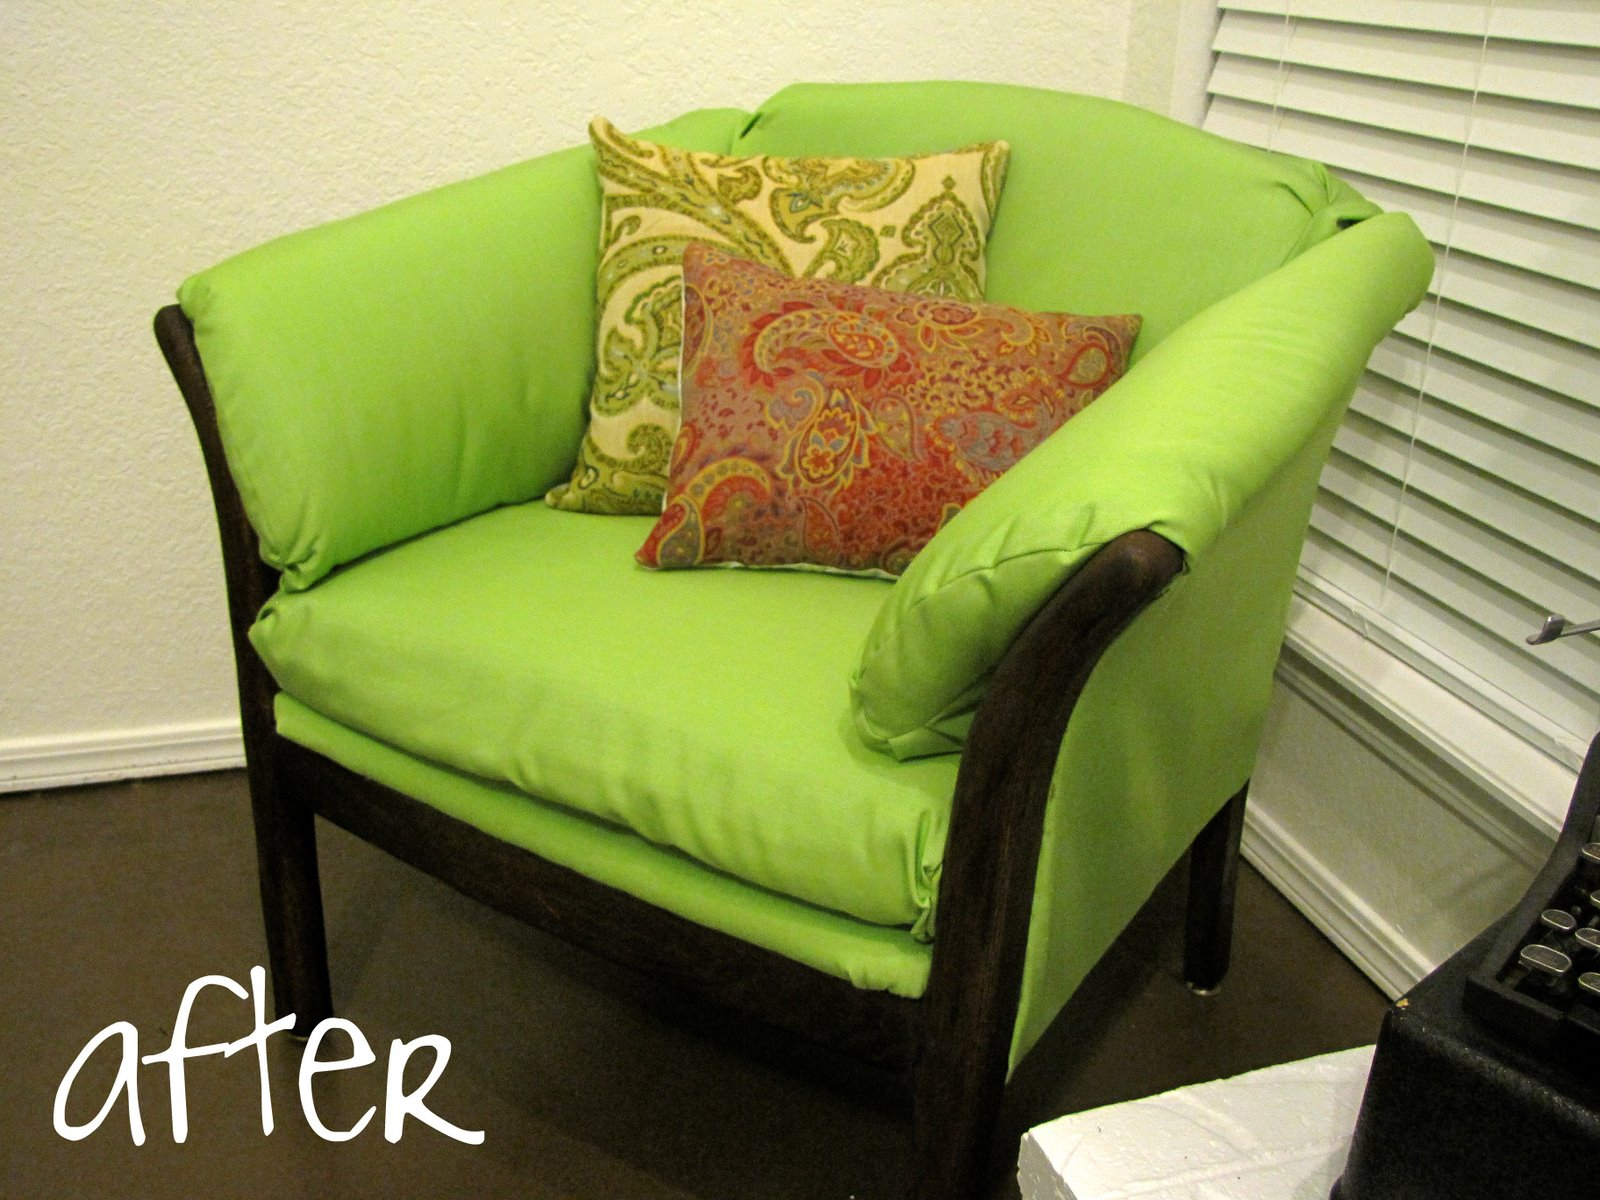 diy reupholster living room chair new york style how to: a club | lot 26 vintage